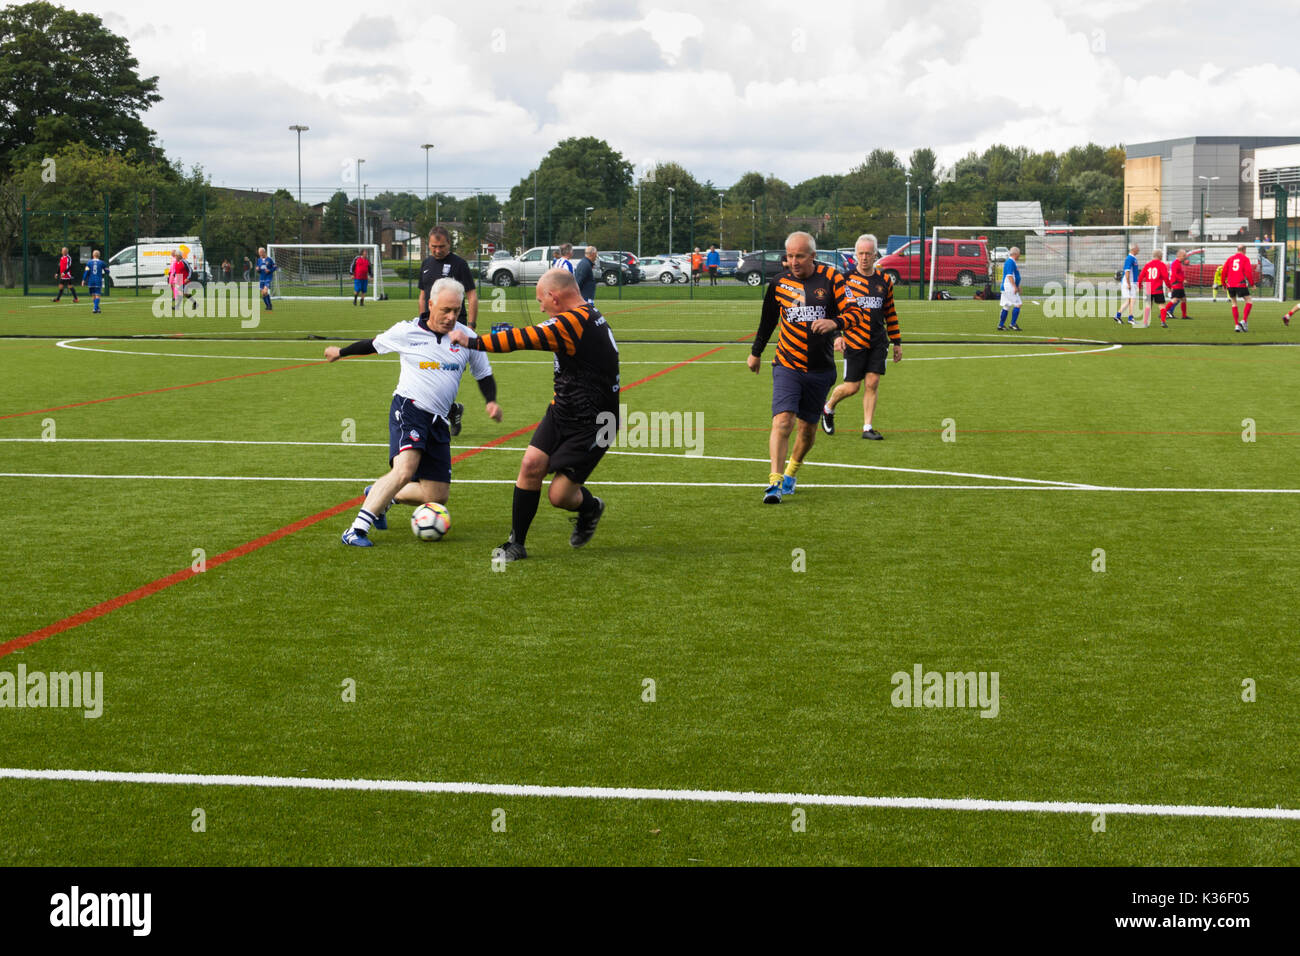 Heywood, Greater Manchester, UK. 1st Sep, 2017. Today saw the kick-off of the second season for the Greater Manchester Over 60s Walking Football league at Heywood Sports Village. David Mort, playing for Bolton Wanderers A, shows considerable body swerve against his Roach Dynamos opponent. Walking Football is one of the fastest growing areas of organised football in the UK, aimed at increasing health and fitness through physical activity in the over 50s, encouraged by football clubs, health professionals and the Football Association. Credit: Joseph Clemson/Alamy Live News - Stock Image